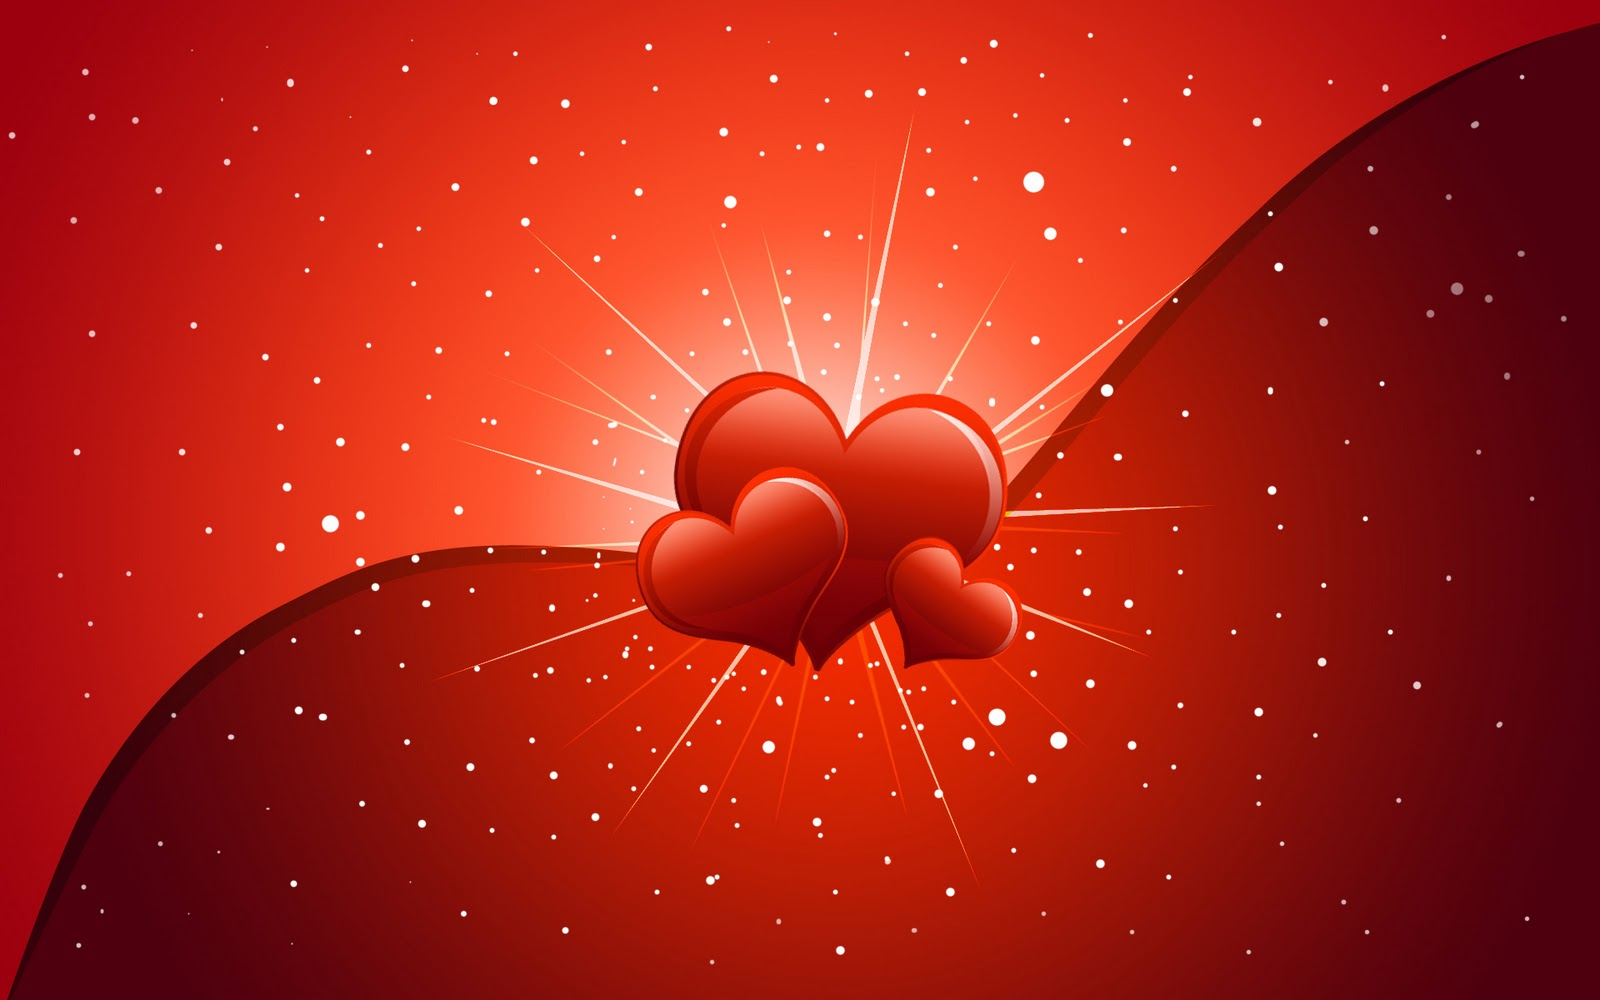 Wallpapers Romantis Valentines Day 2013 Cybermales 1600x1000